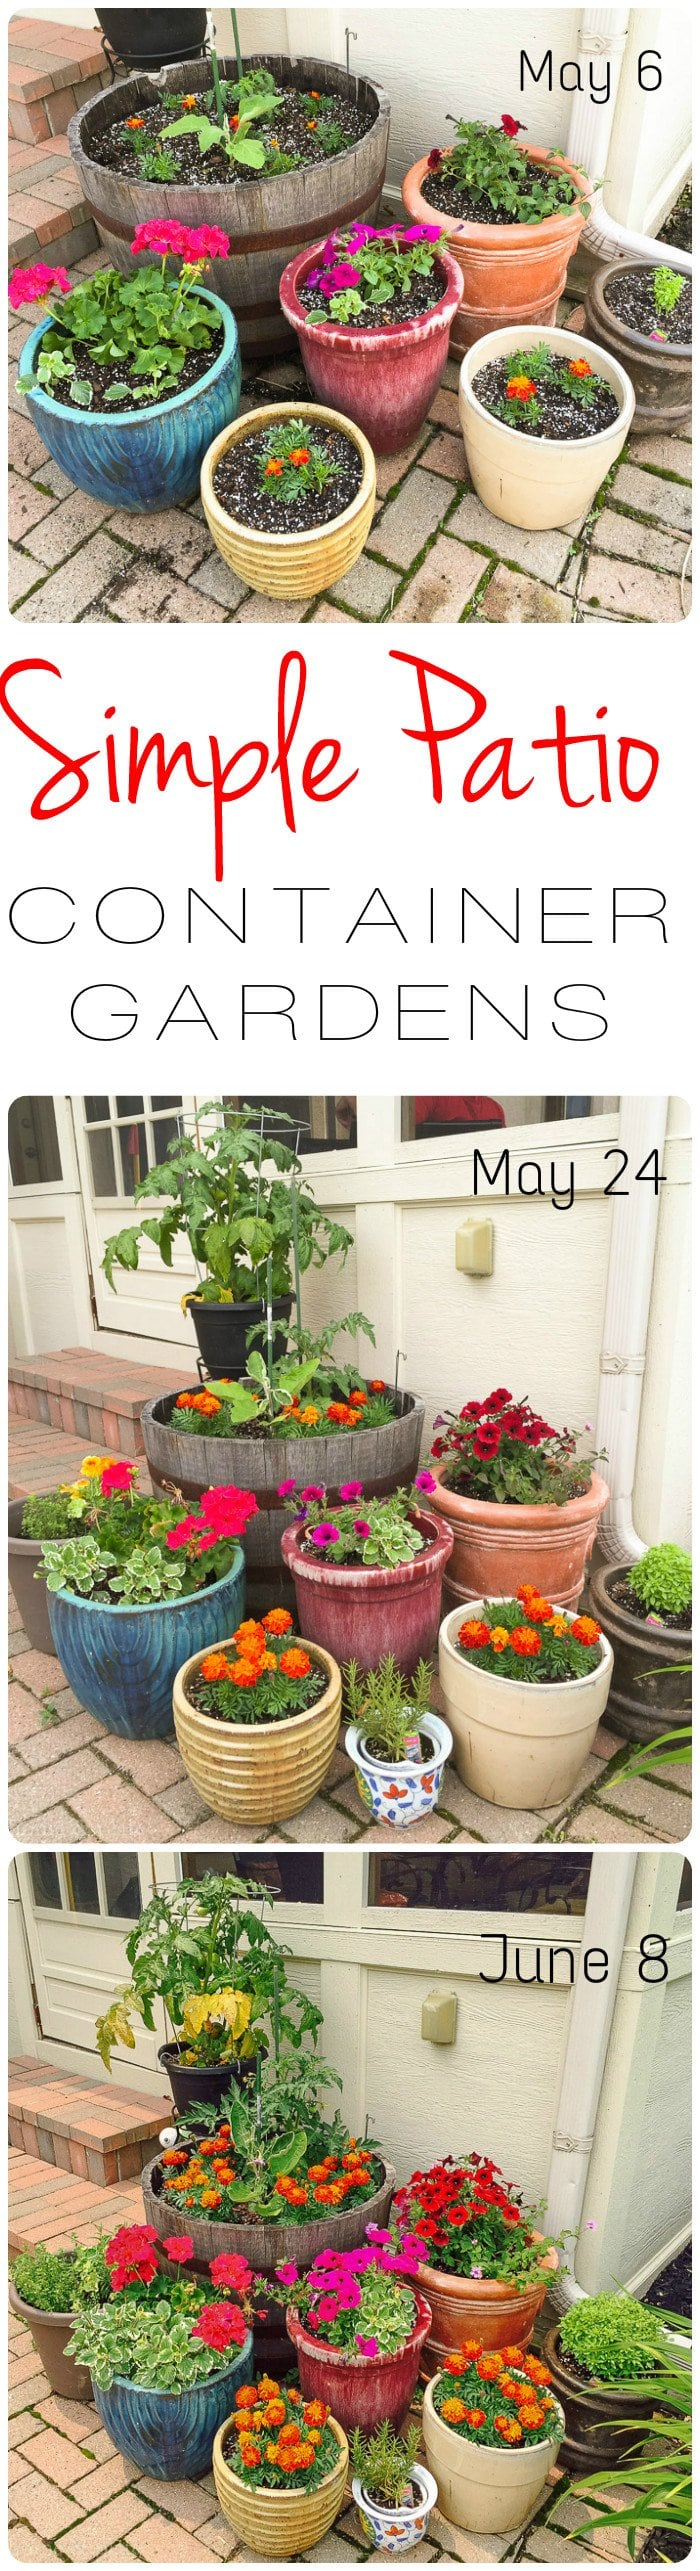 Simple Patio Container Gardens | Home & Plate | www.homeandplate.com | In a month